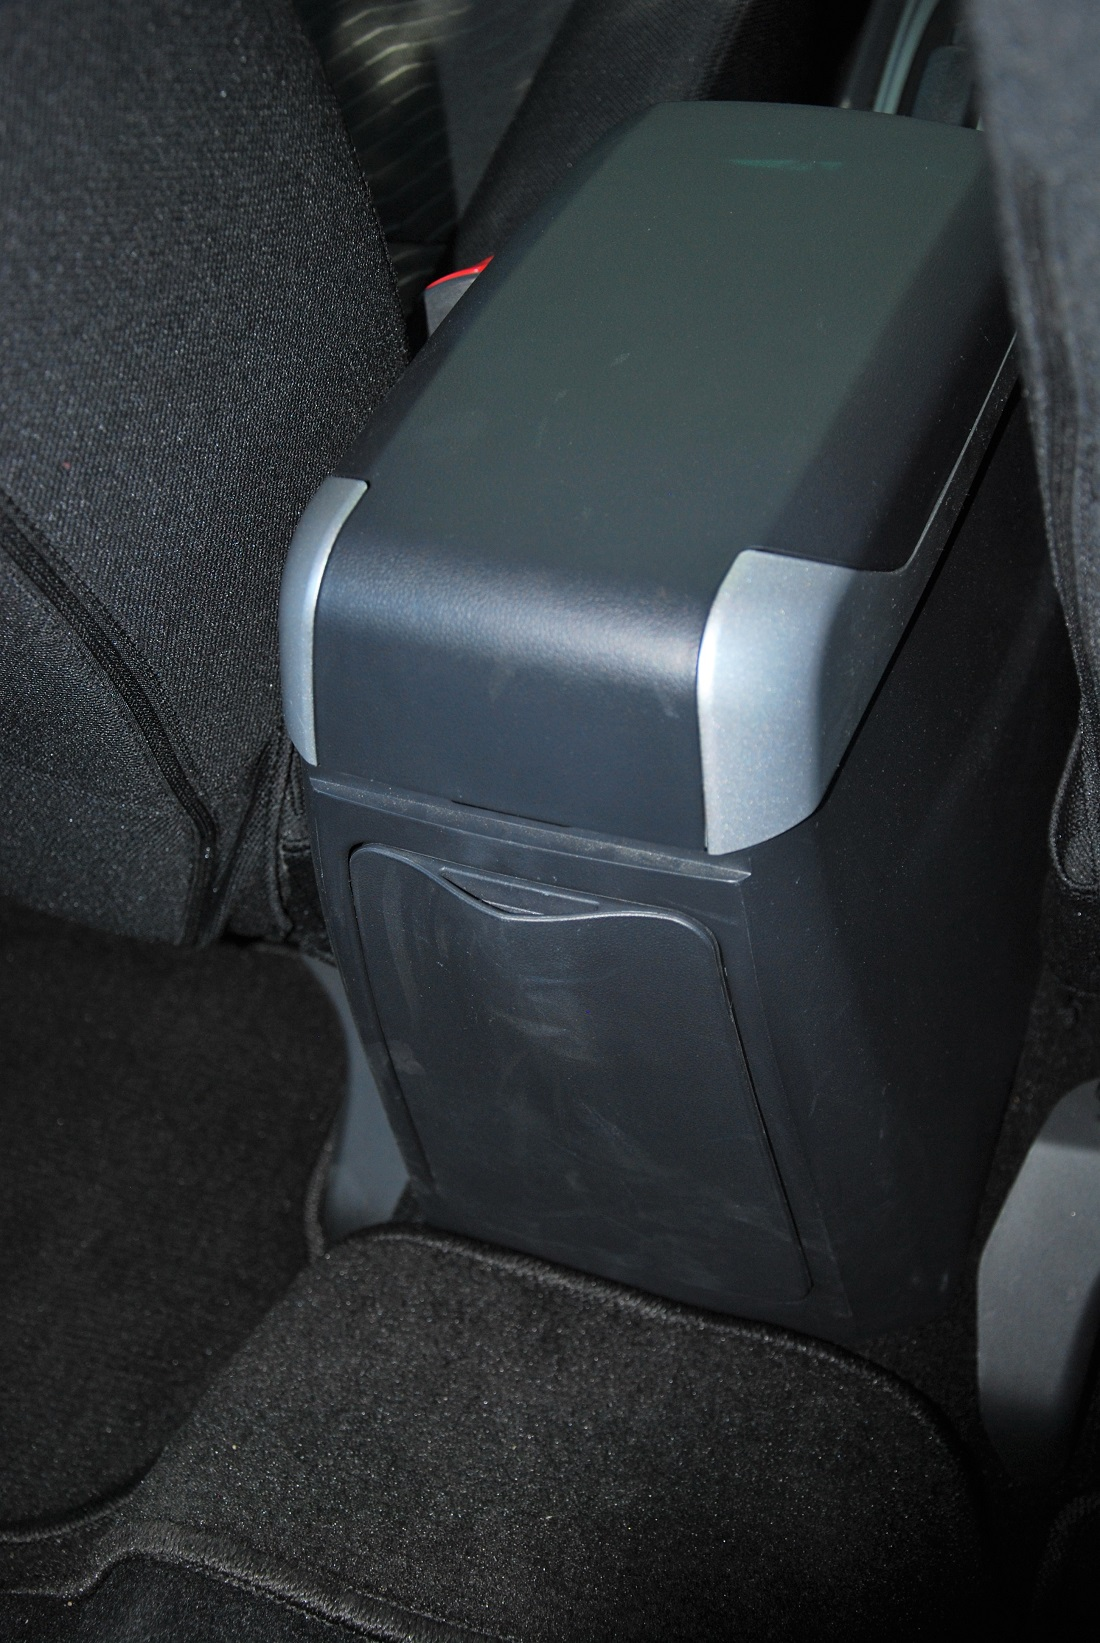 console box grand new avanza toyota all camry 2012 1 5s test drive review autoworld my